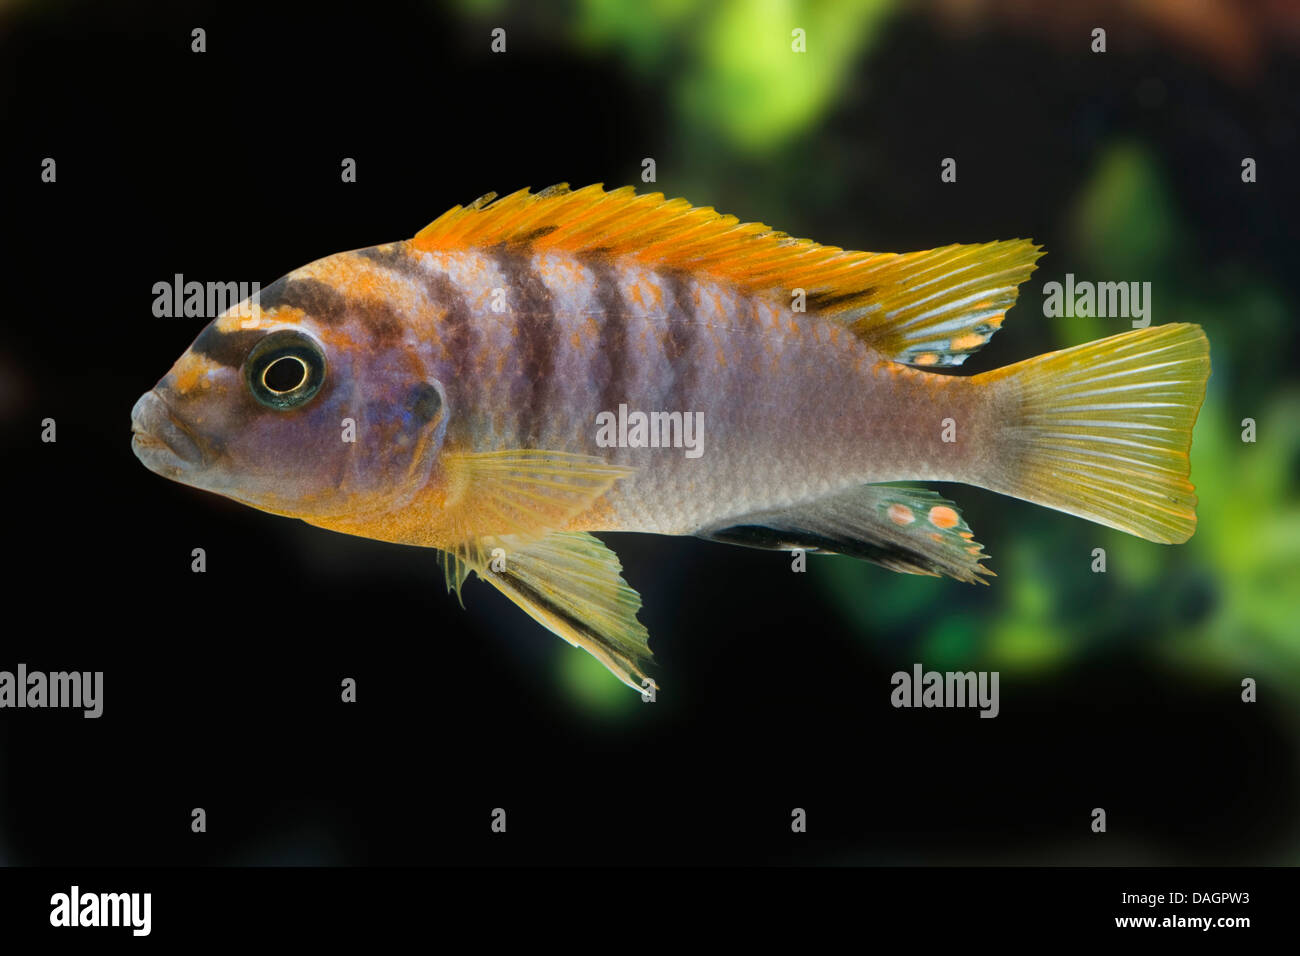 African Cichlid Stock Photos & African Cichlid Stock Images - Page 3